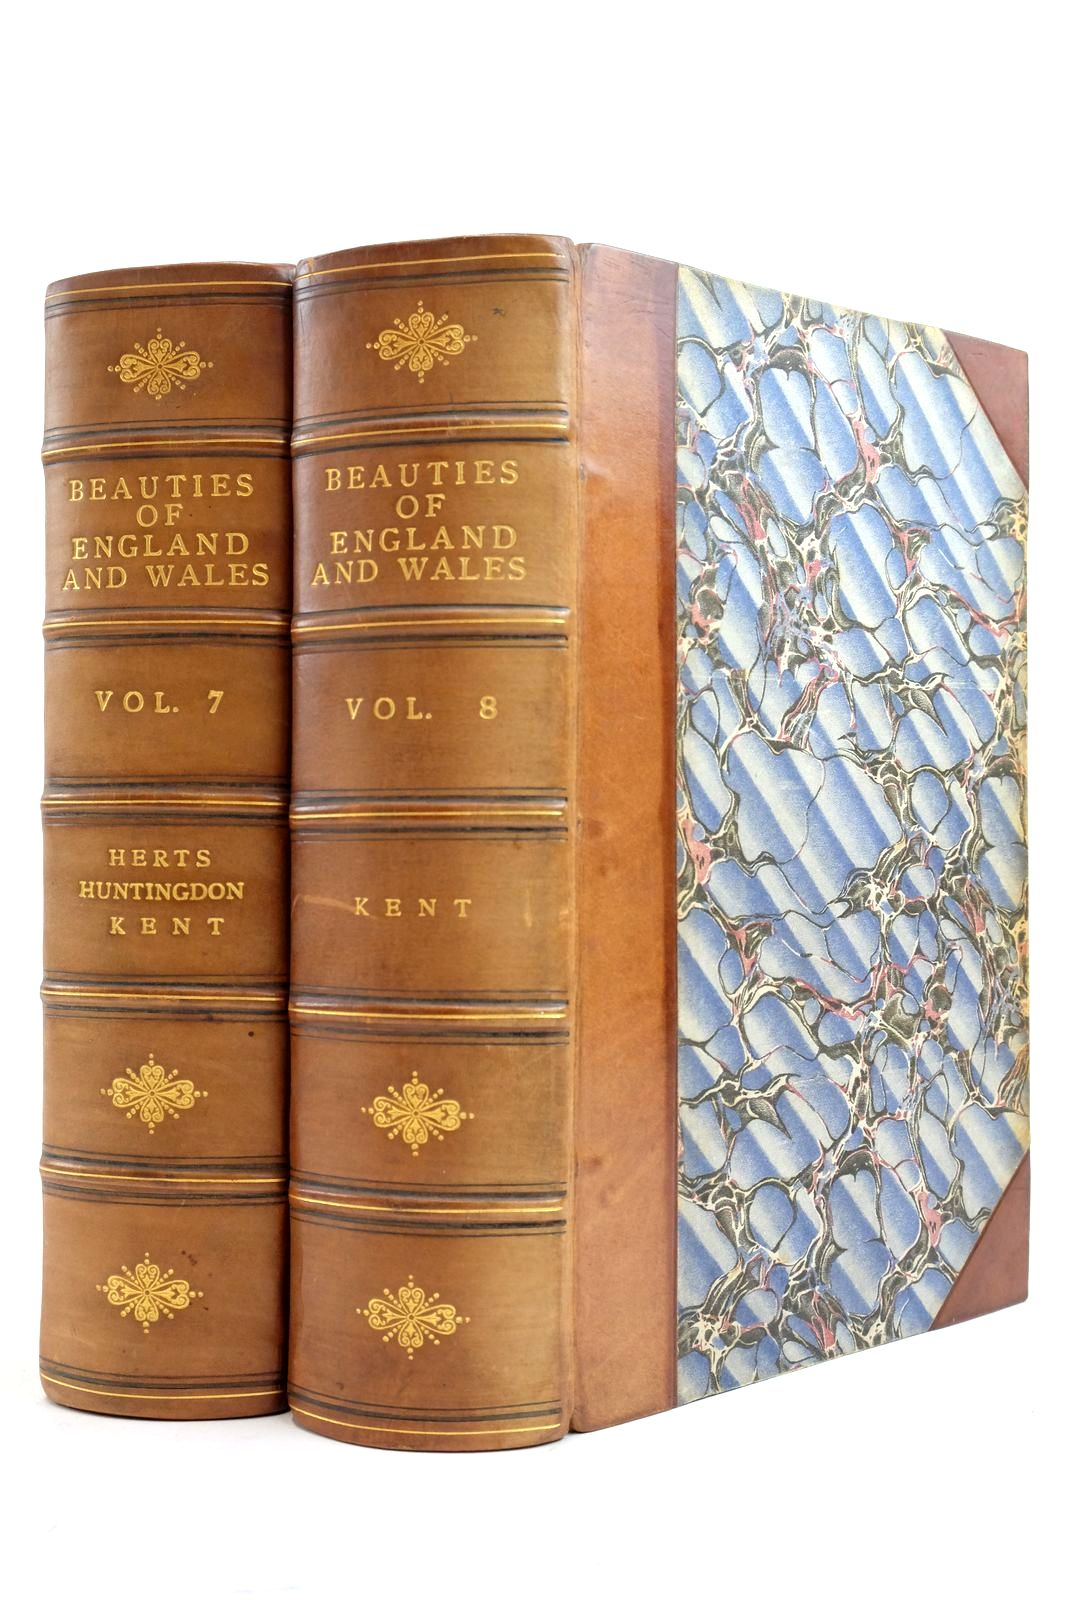 Photo of THE BEAUTIES OF ENGLAND AND WALES VOLS. VII AND VIII (2 VOLUMES)- Stock Number: 2134498